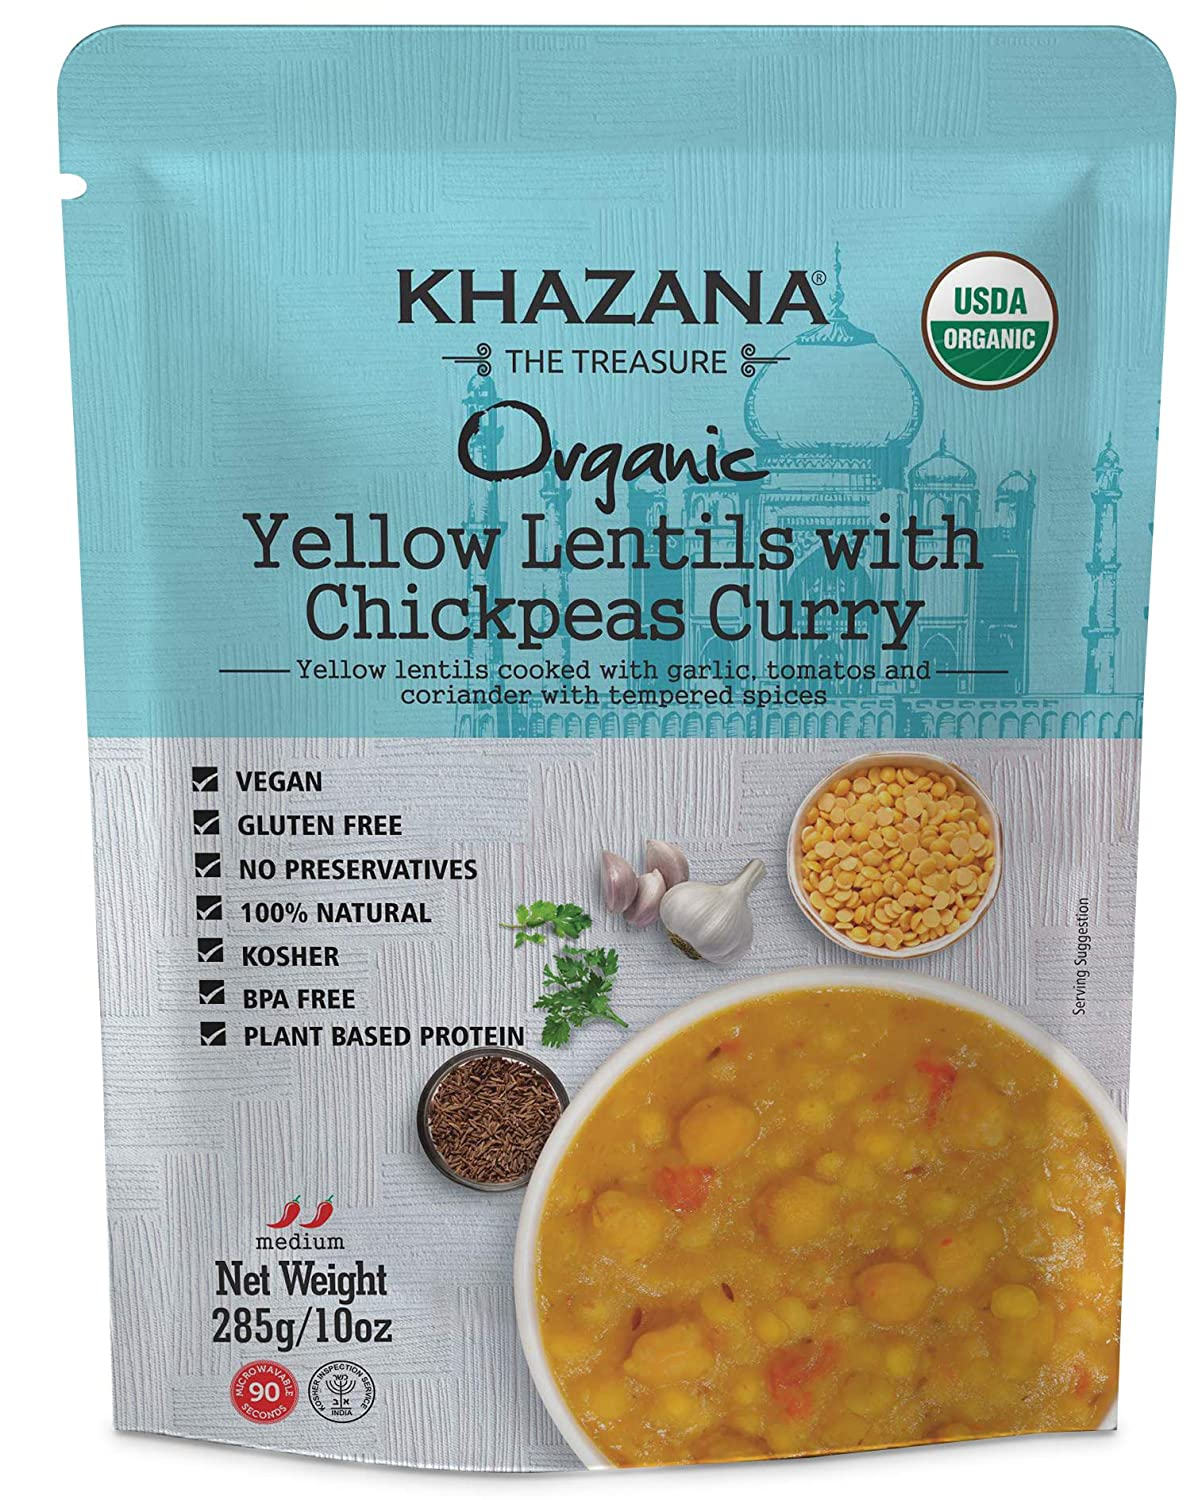 Khazana ORGANIC Ready to Eat Indian Meals (6-Pack) - Yellow Lentils w/ Chickpeas Curry - 10oz Pouches | Non-GMO, Vegan, Gluten Free & Kosher | Authentic Cuisine in 90 Seconds!